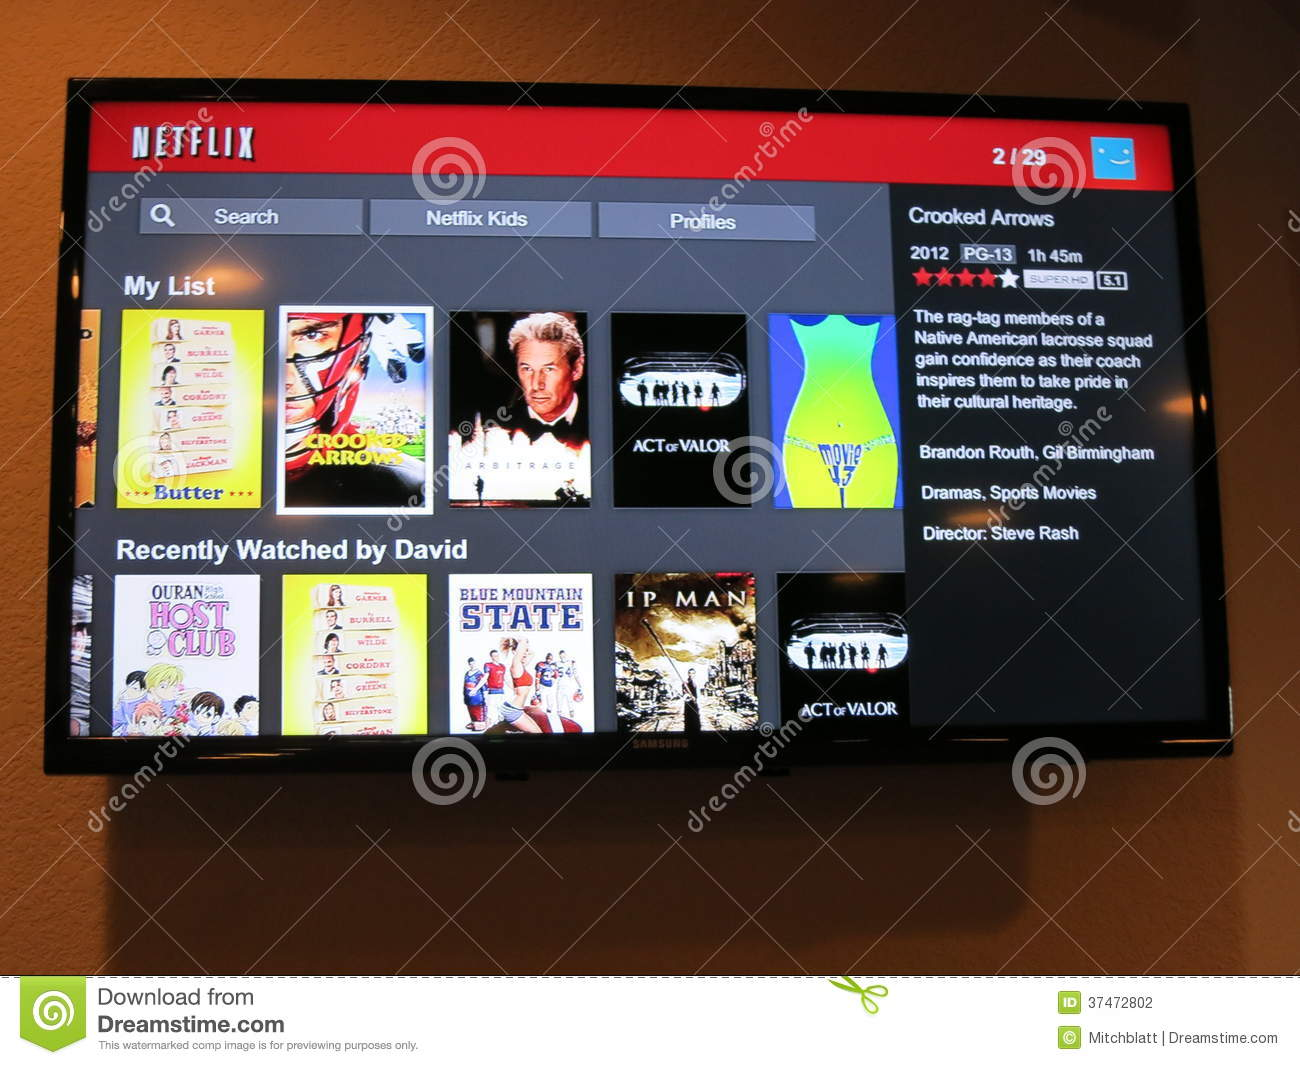 Download play ball dominican movie on netflix